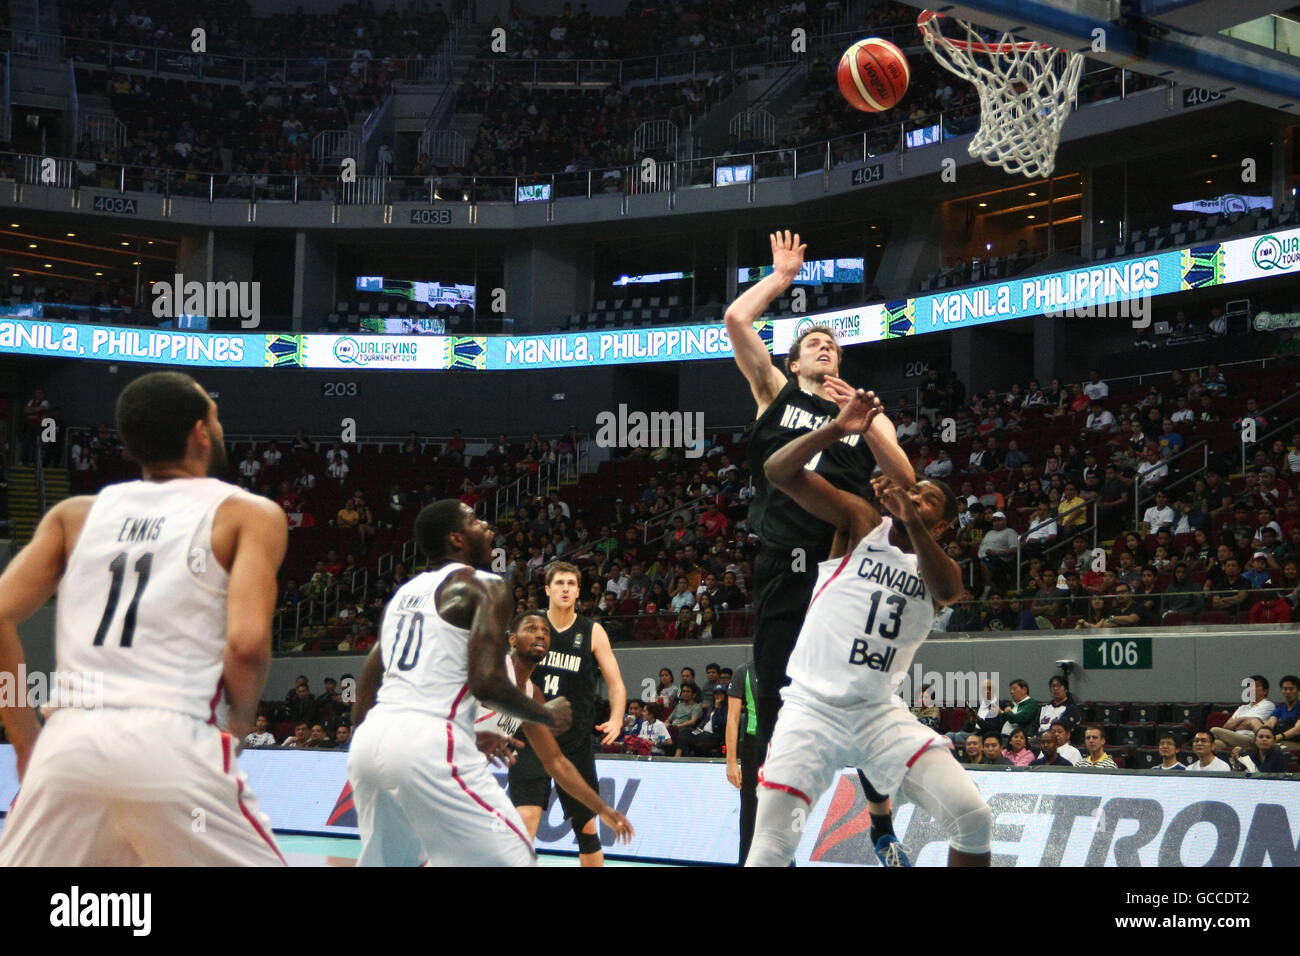 Philippines. 9th July, 2016. New Zealand and Canada played at the Mall of Asia Arena in Pasay City for the FIBA - Stock Image